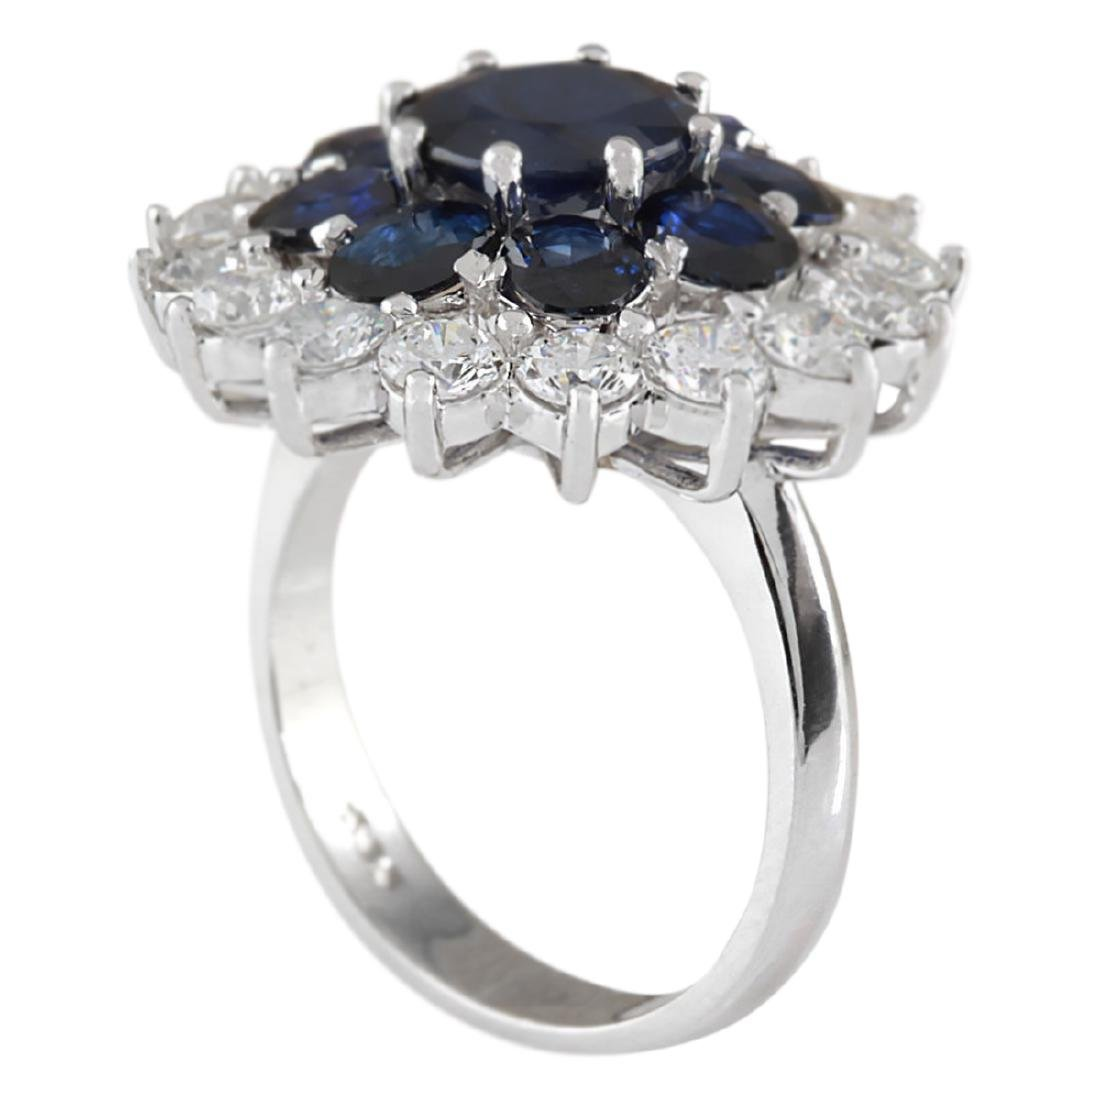 6.37 CTW Natural Sapphire And Diamond Ring In 18K White - 3